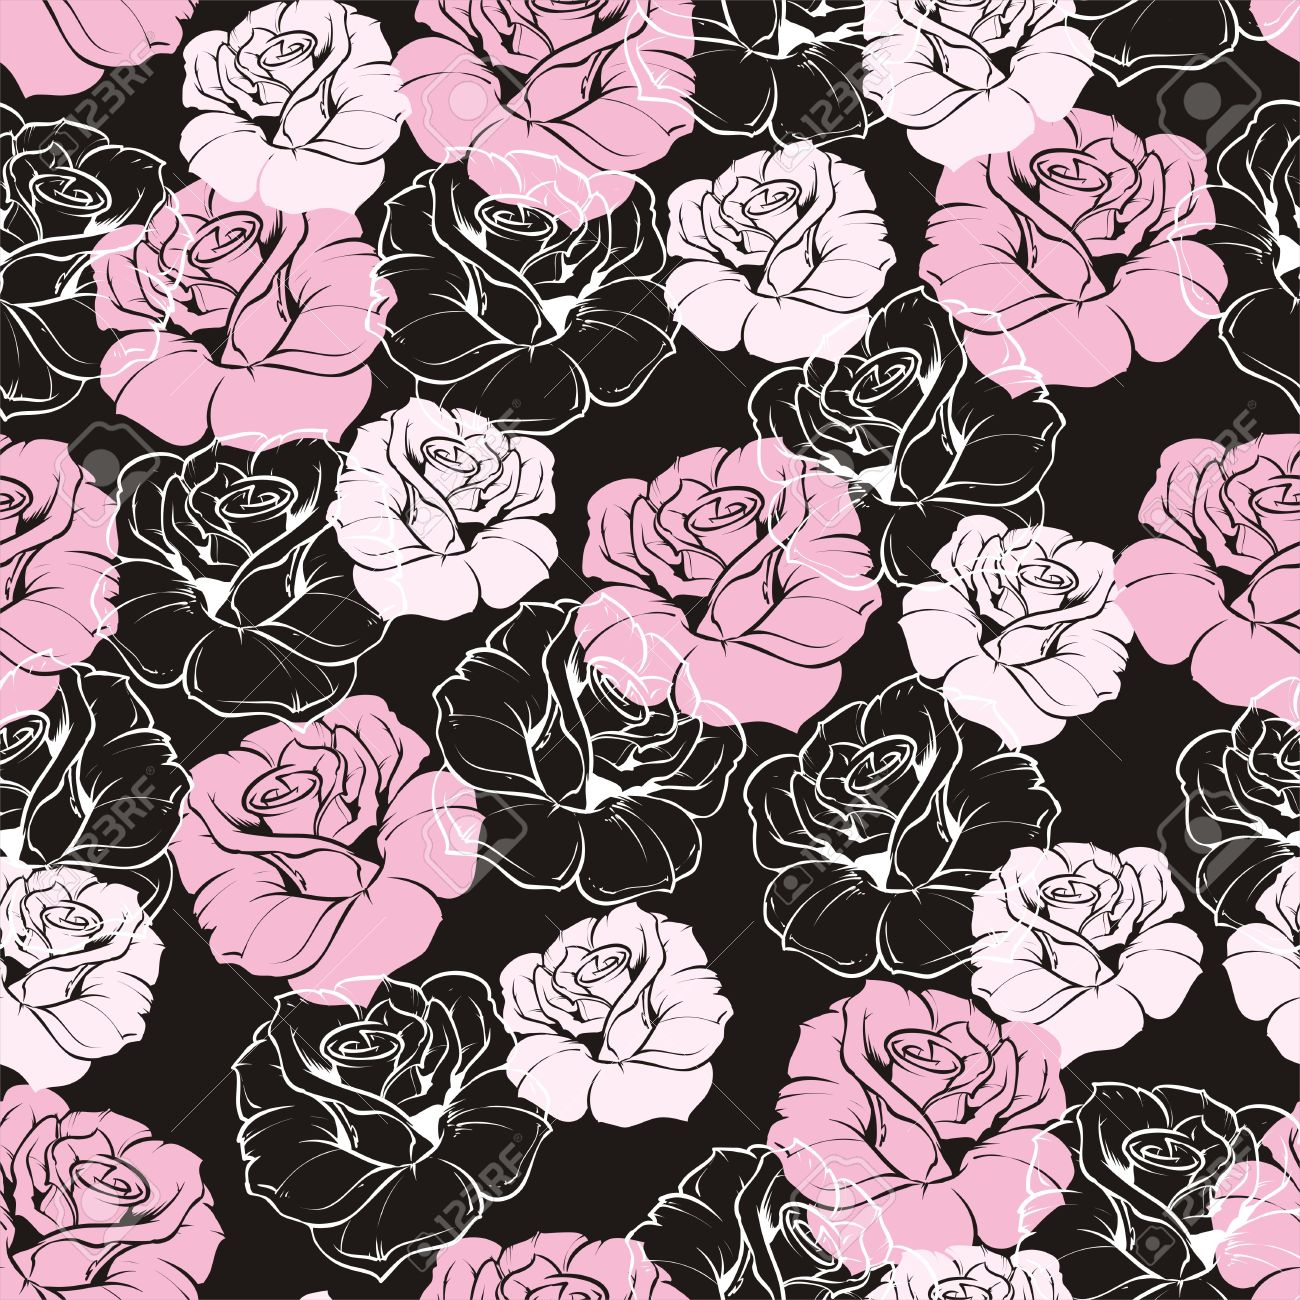 Seamless Floral Pattern With Pink And White Roses On Black